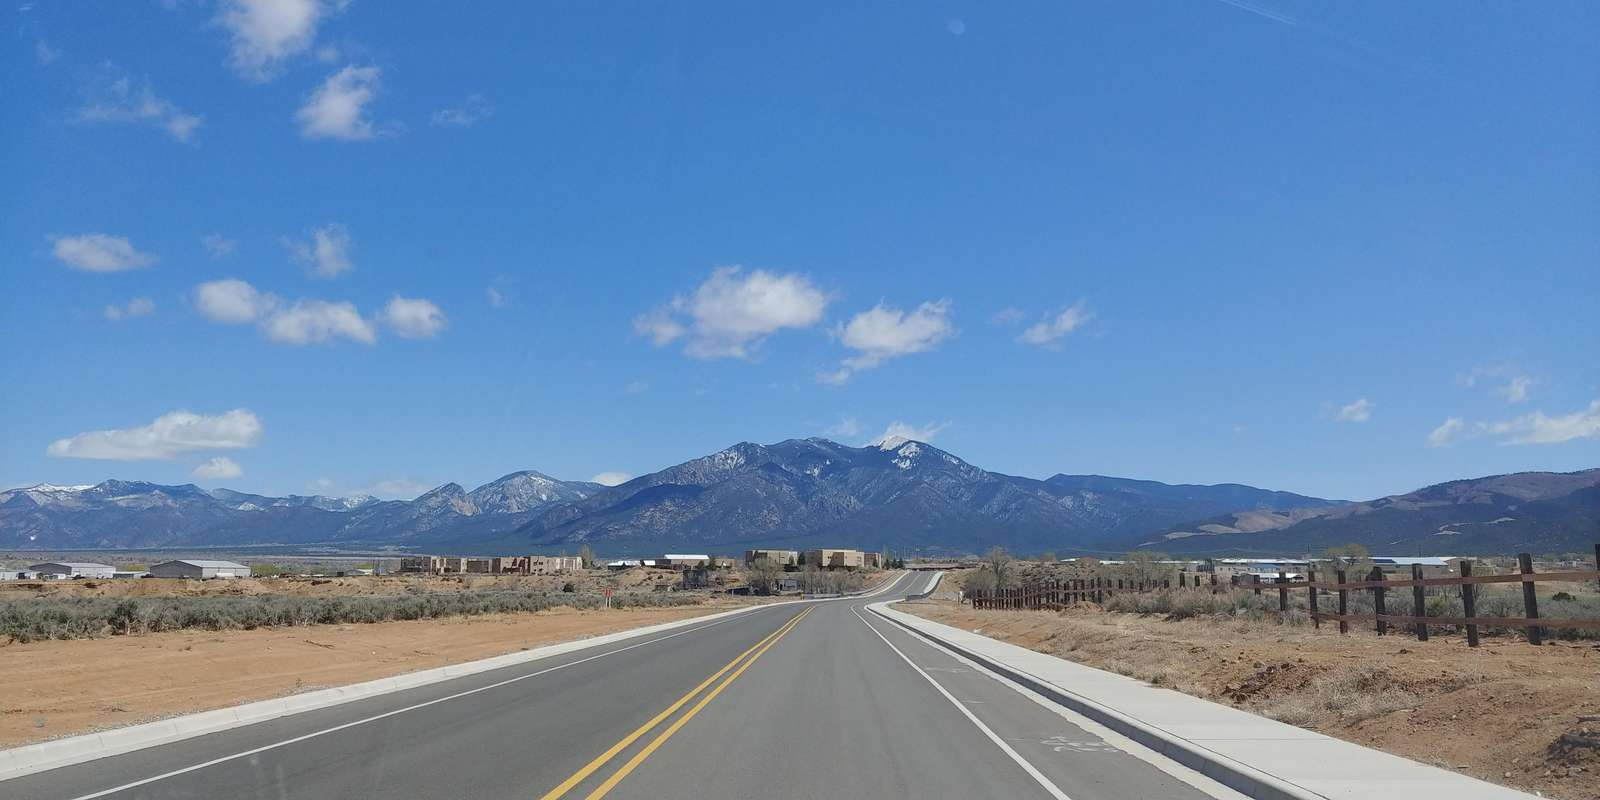 Driving up to Taos Ski Valley